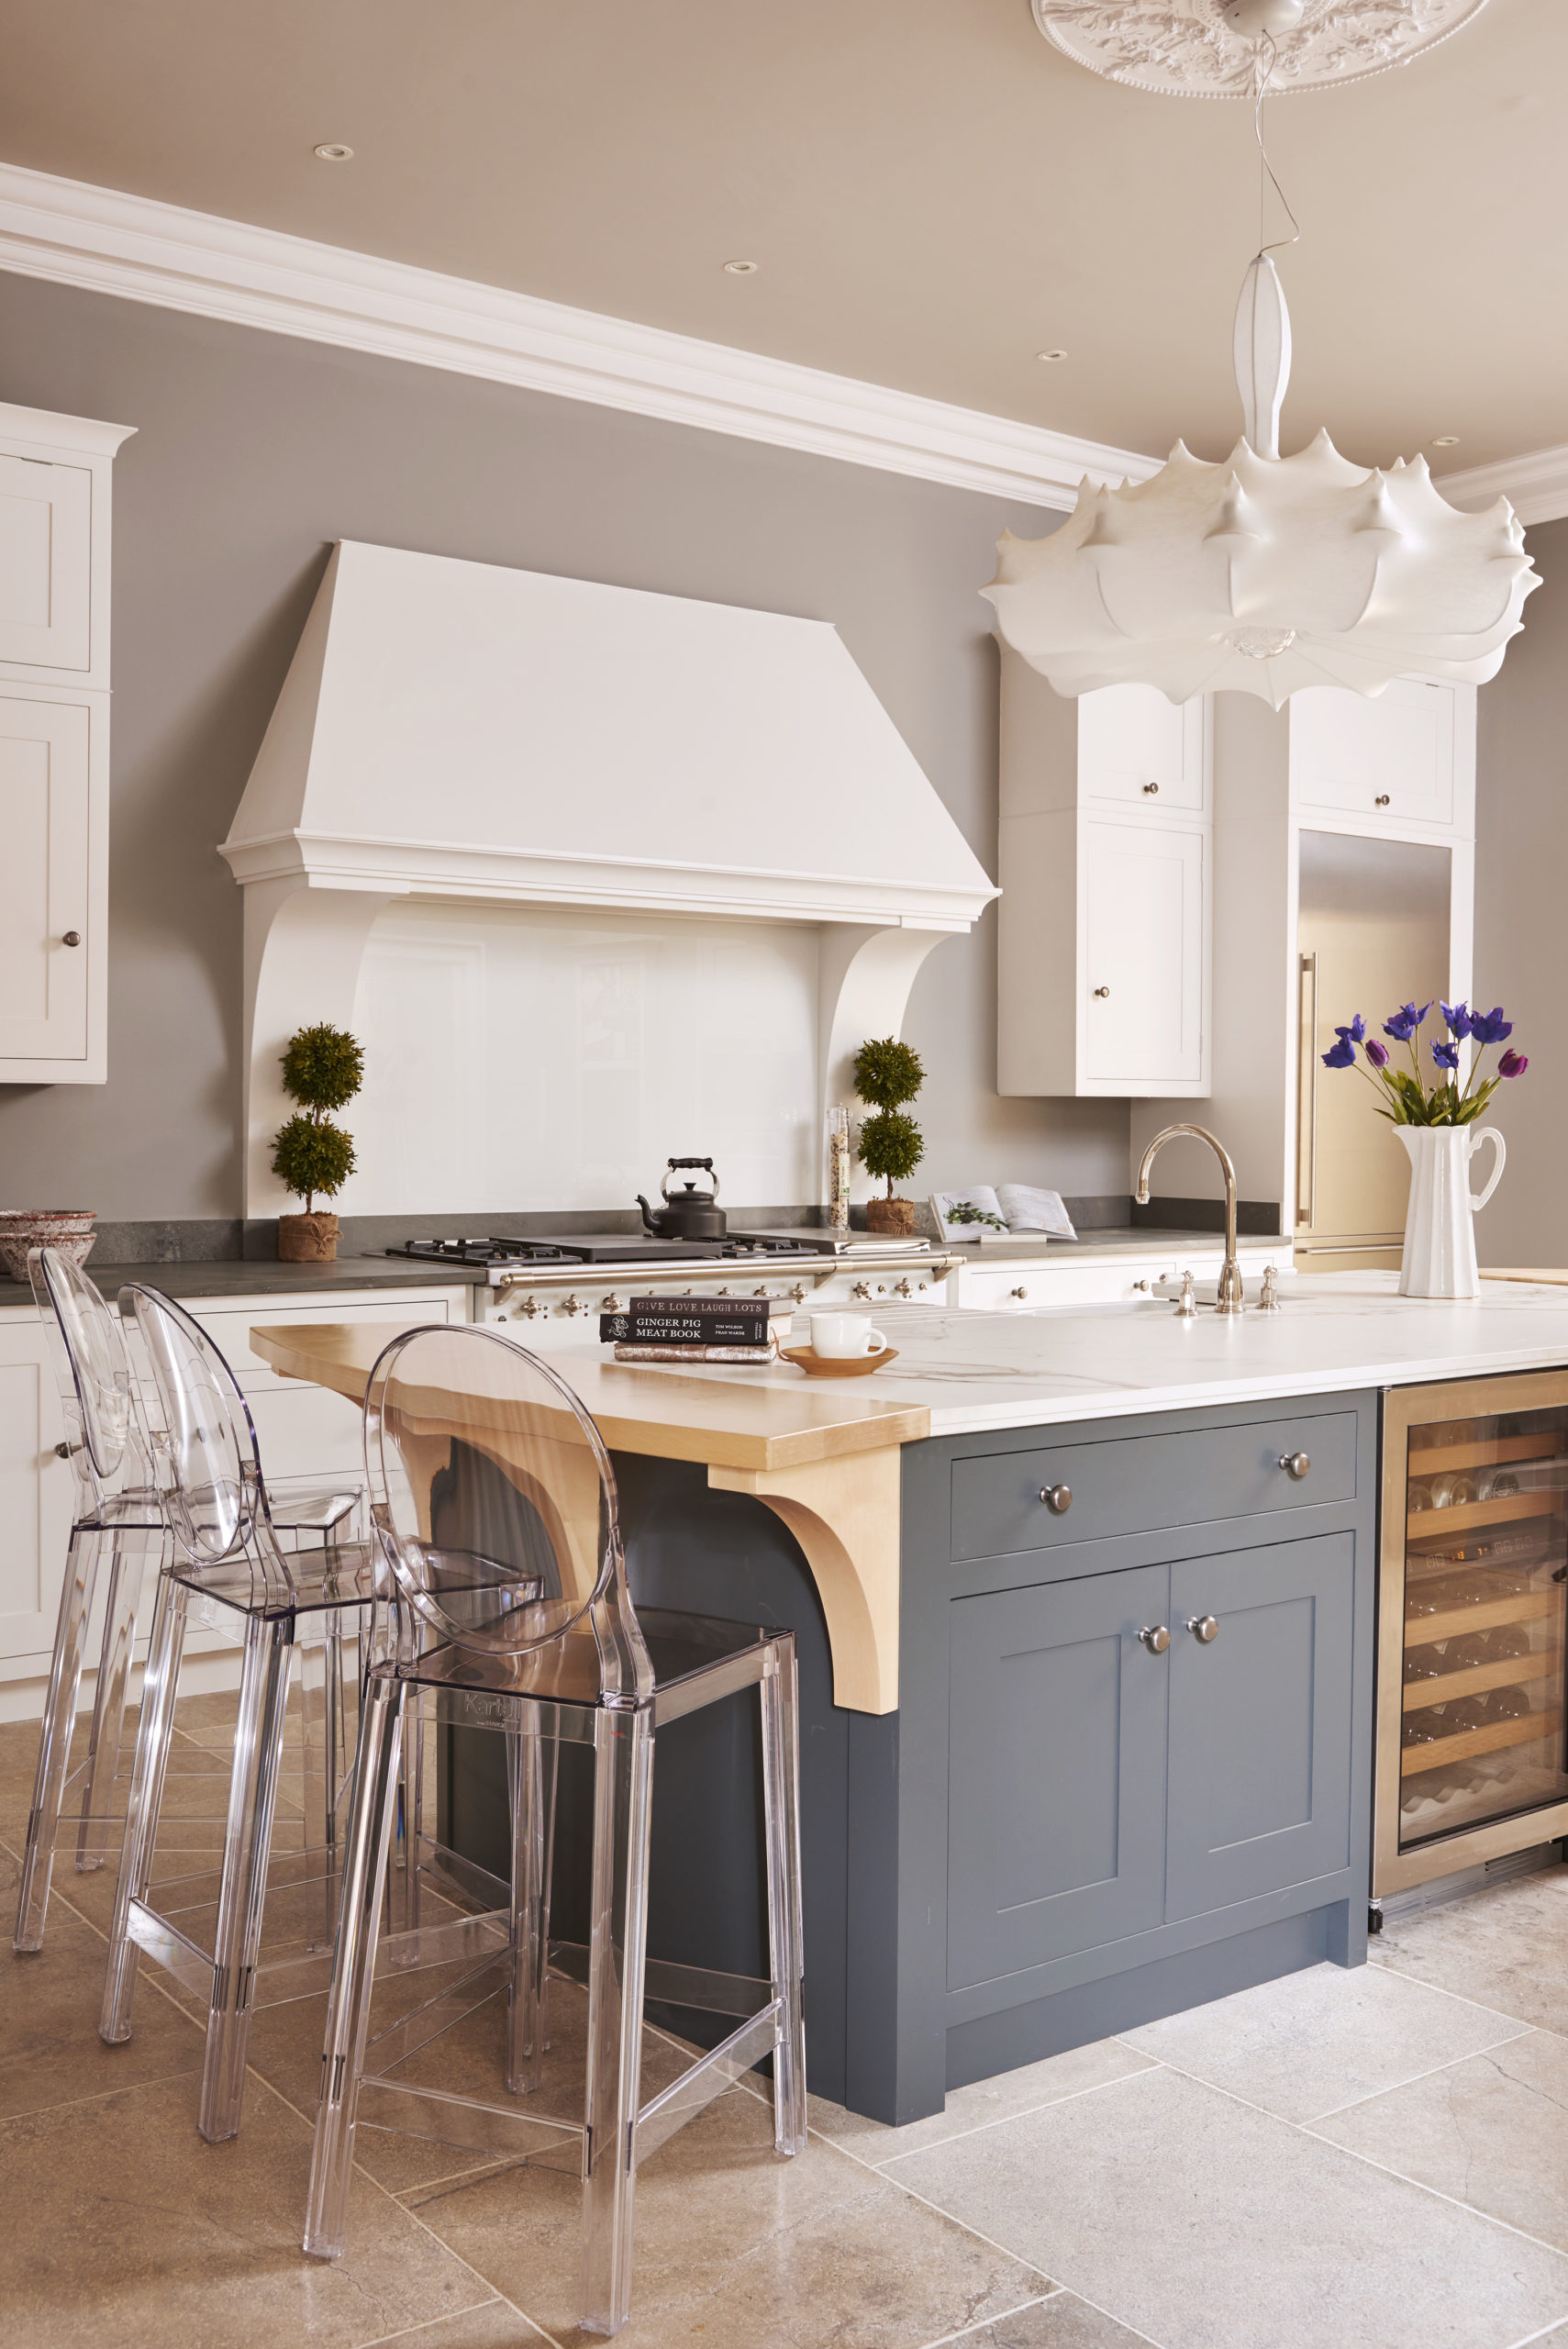 Kitchen Island Ideas to Make It a Focal Point and Functional